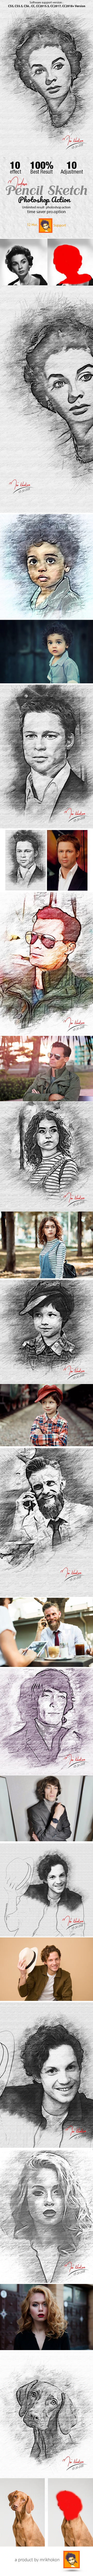 Modern Pencil Sketch Photoshop Action - Photo Effects Actions